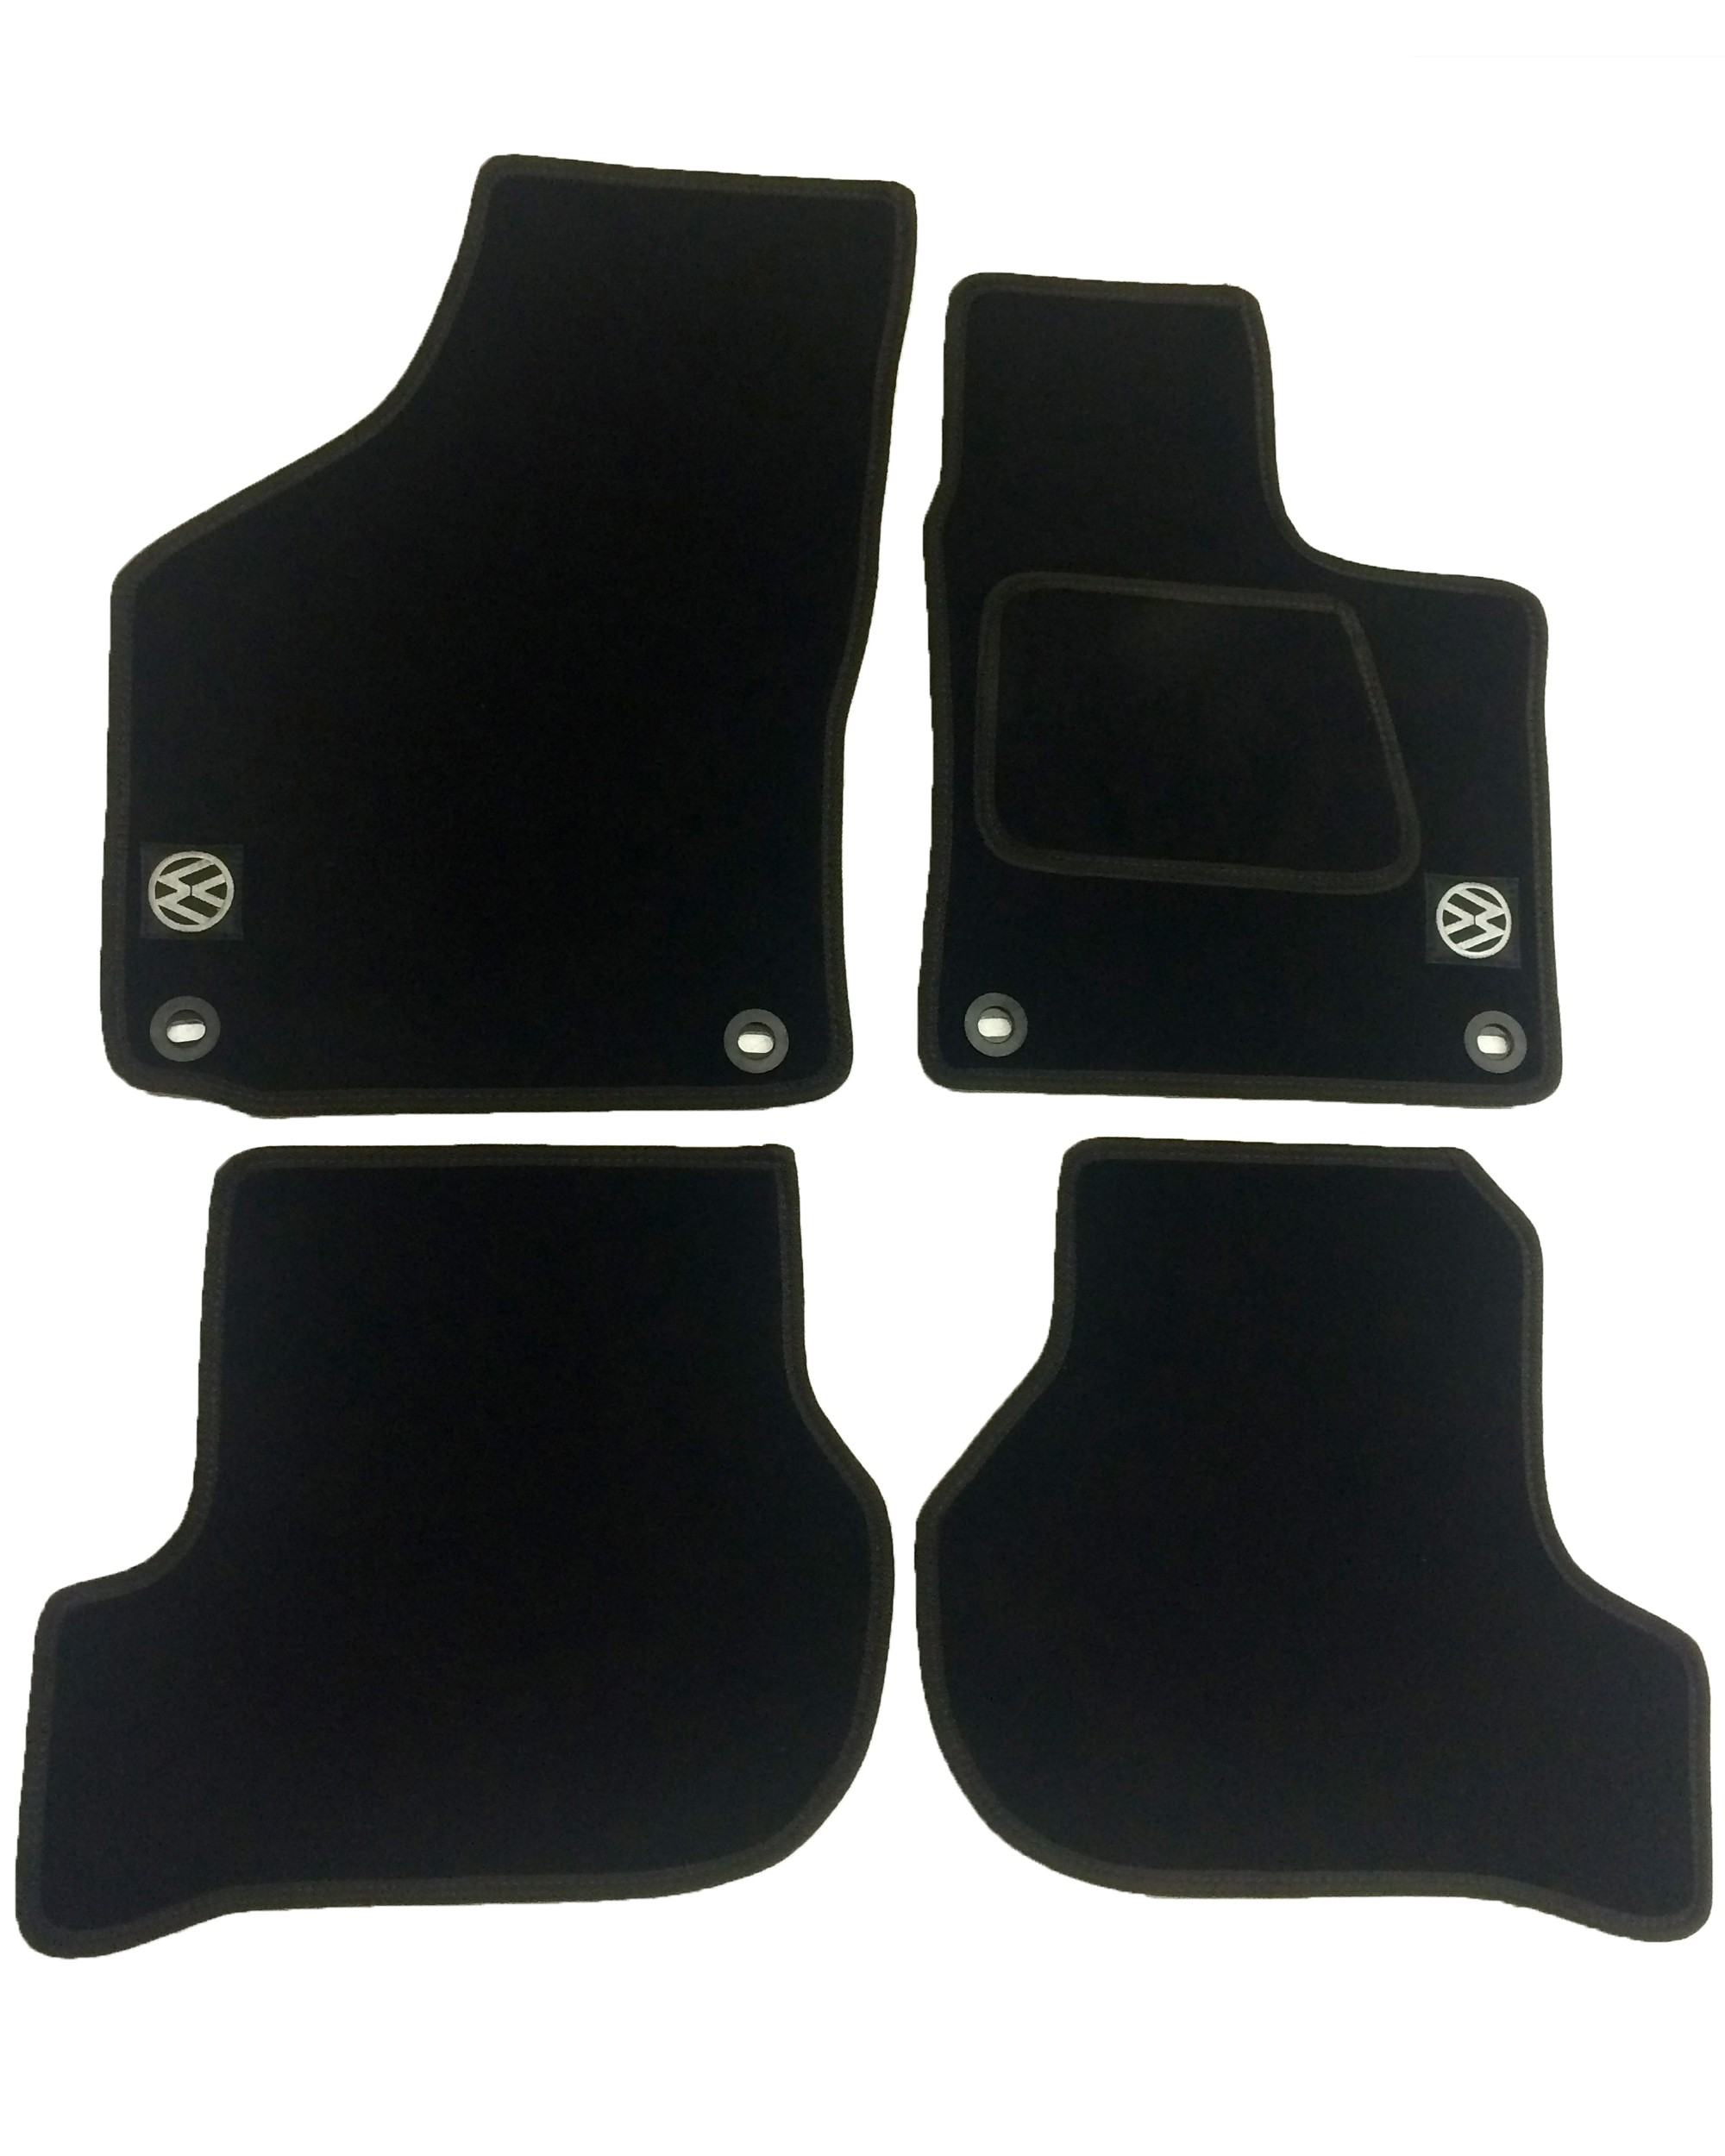 Volkswagen VW Jetta MK5 Tailored Car Mats with logos (2005 - 2010)